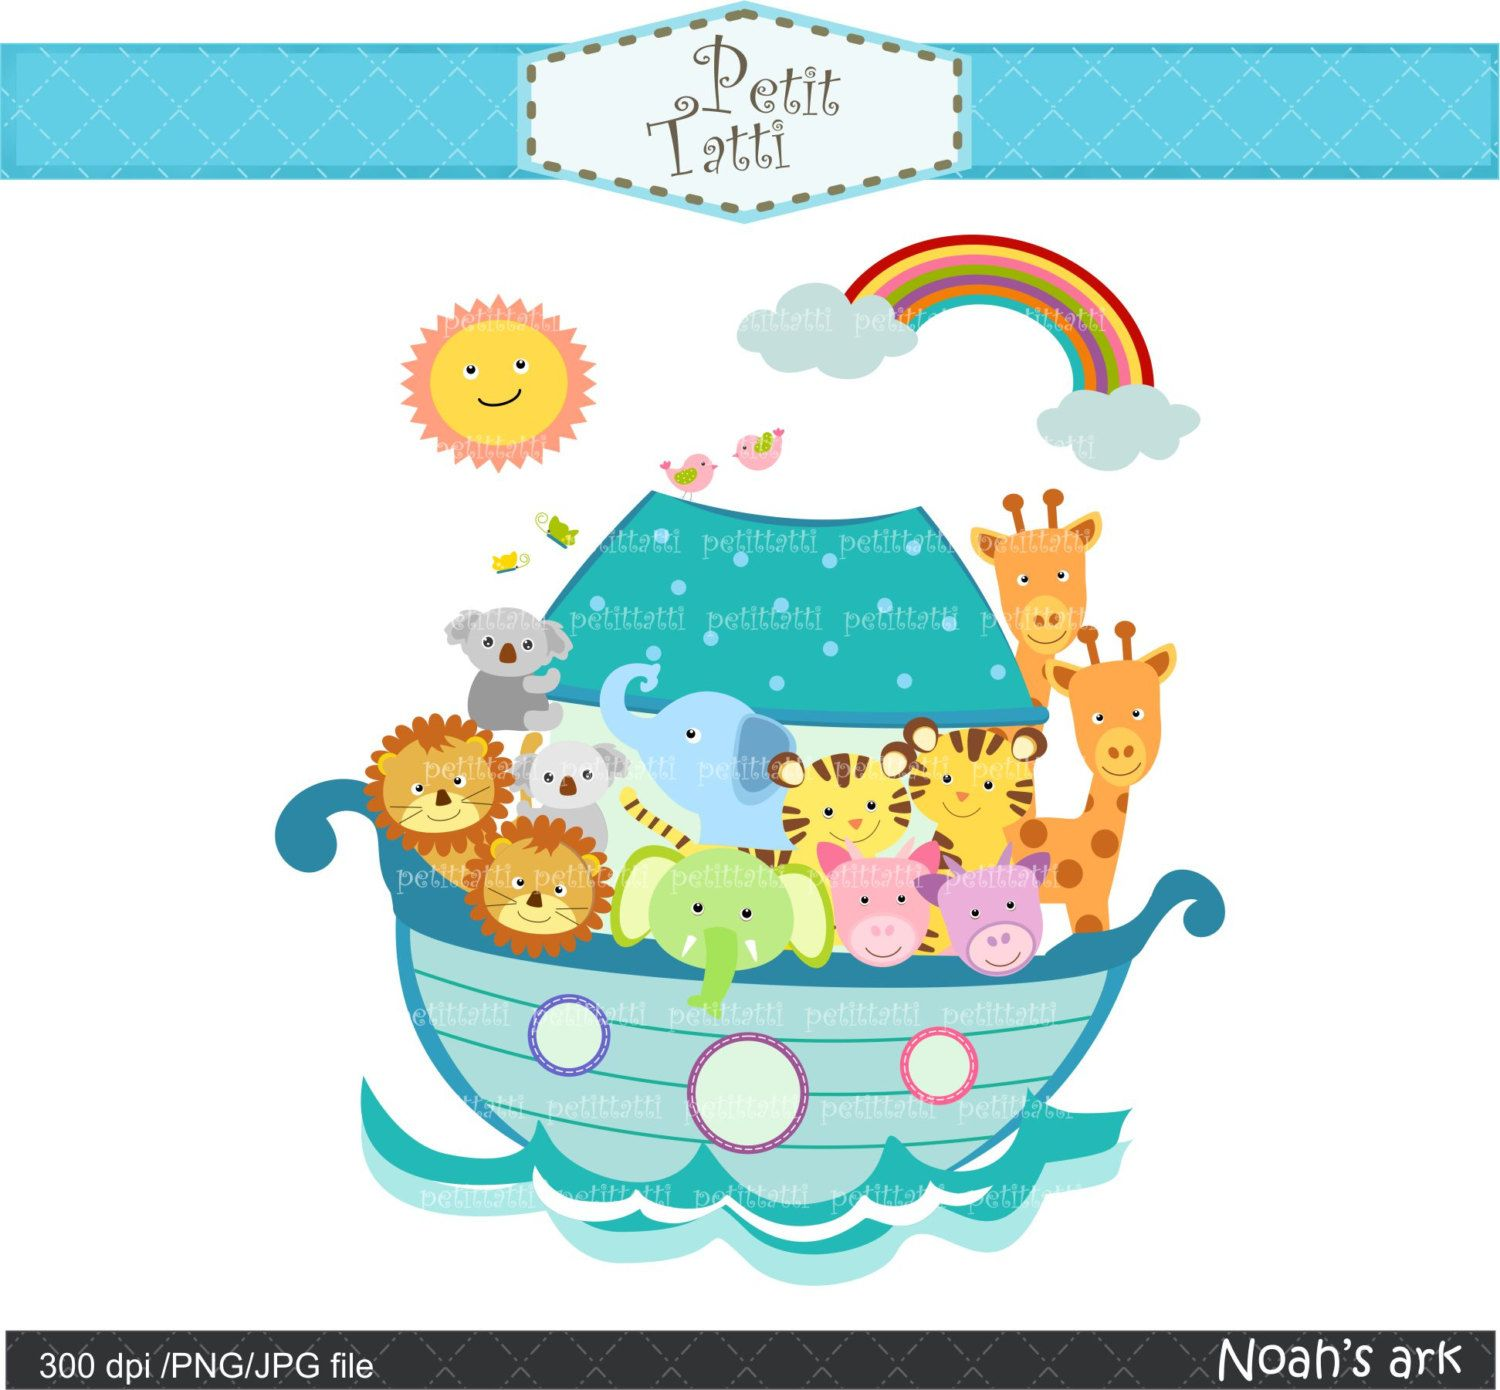 Noah-s ark baby shower clipart graphic free library Noah\'s ark clipart - Noah\'s ark 3 blue - Noah\'s ark scene ... graphic free library